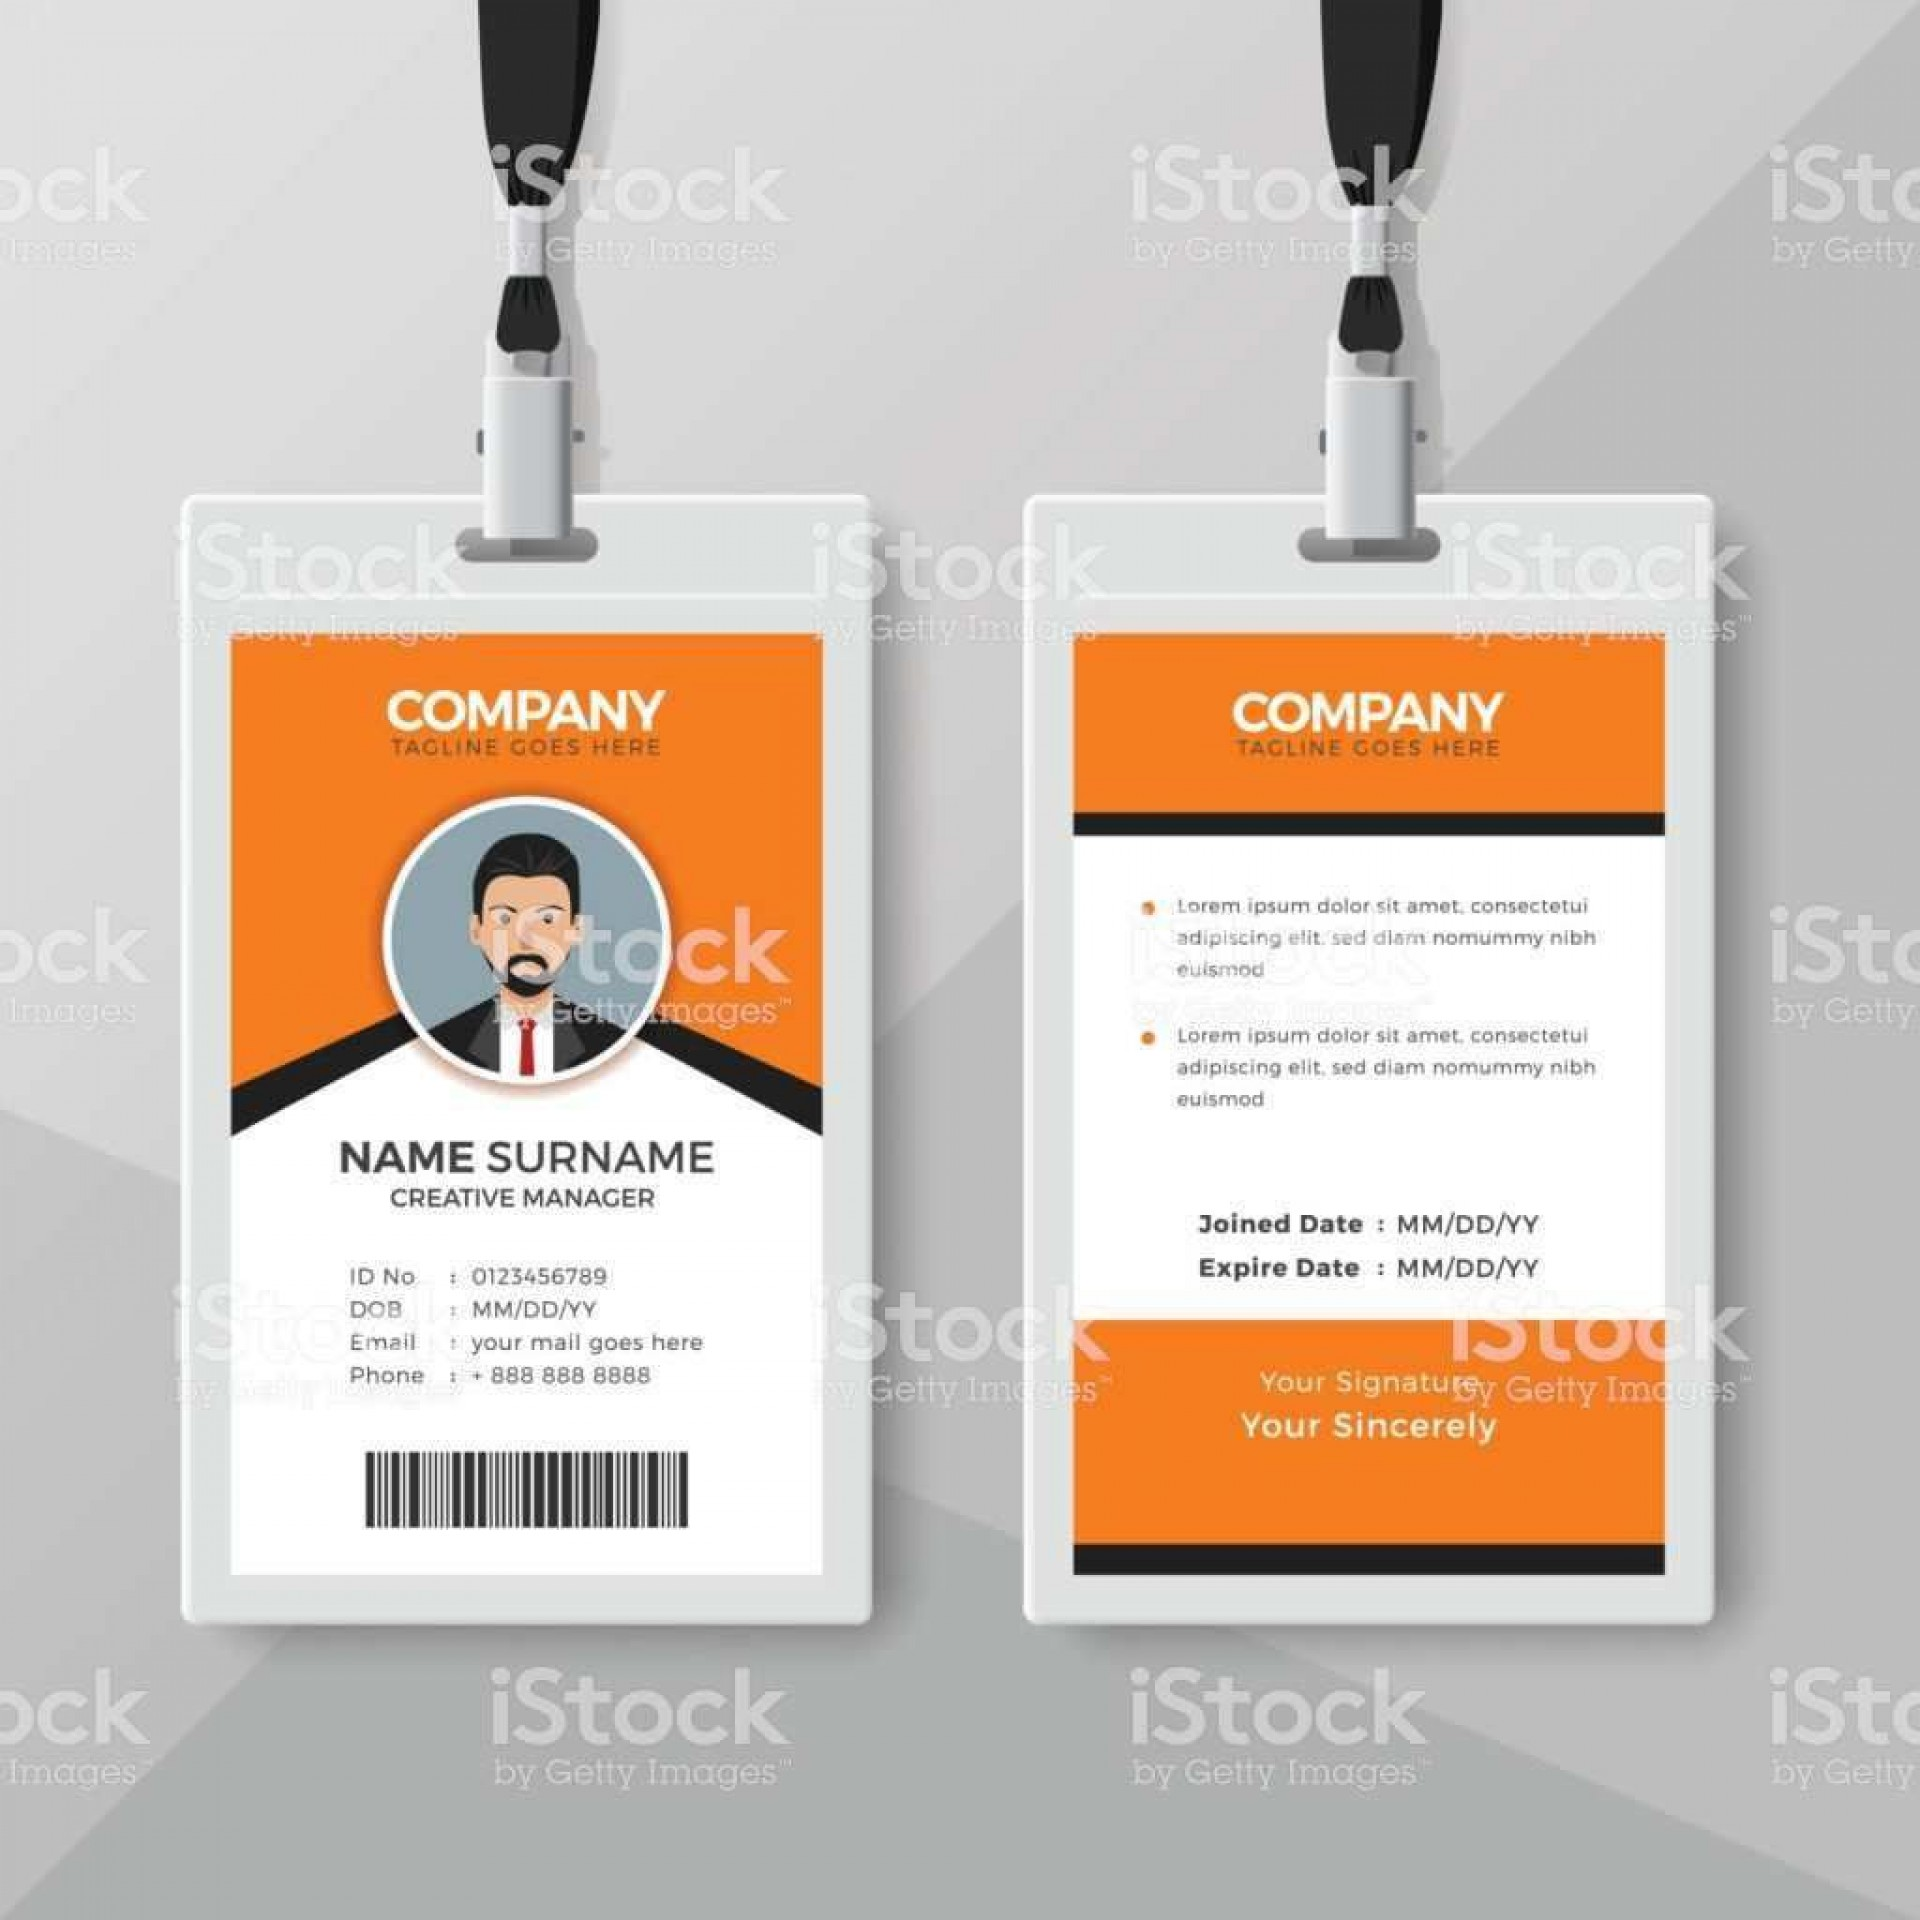 002 Stirring Id Card Template Word High Resolution  Microsoft Vertical Printable1920